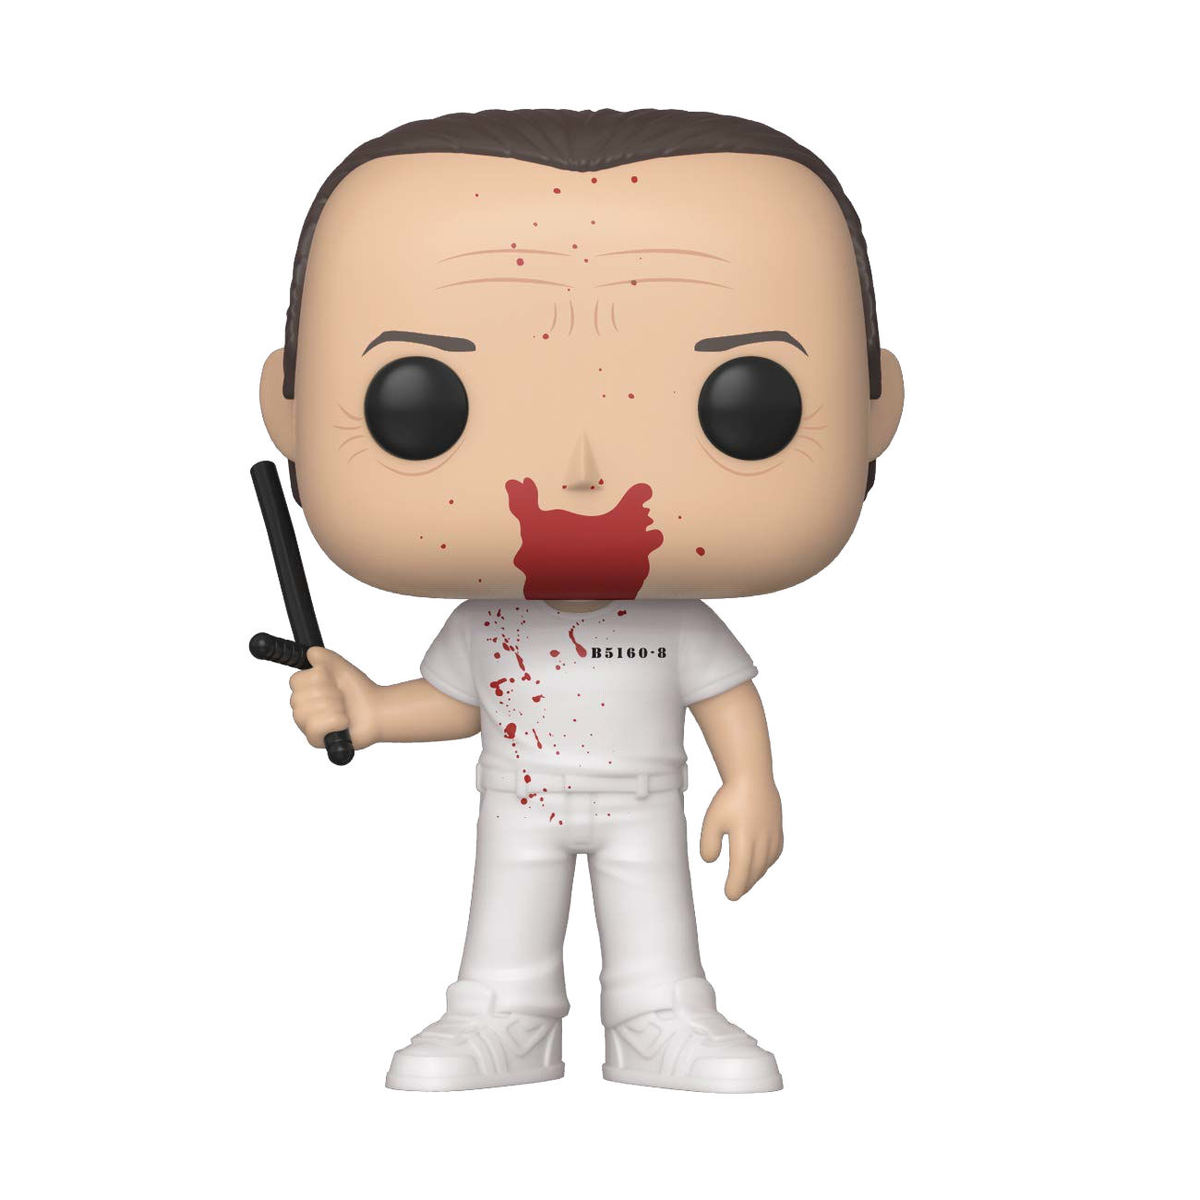 figurka The Silence of the Lambs - POP! - Hannibal - FK41966